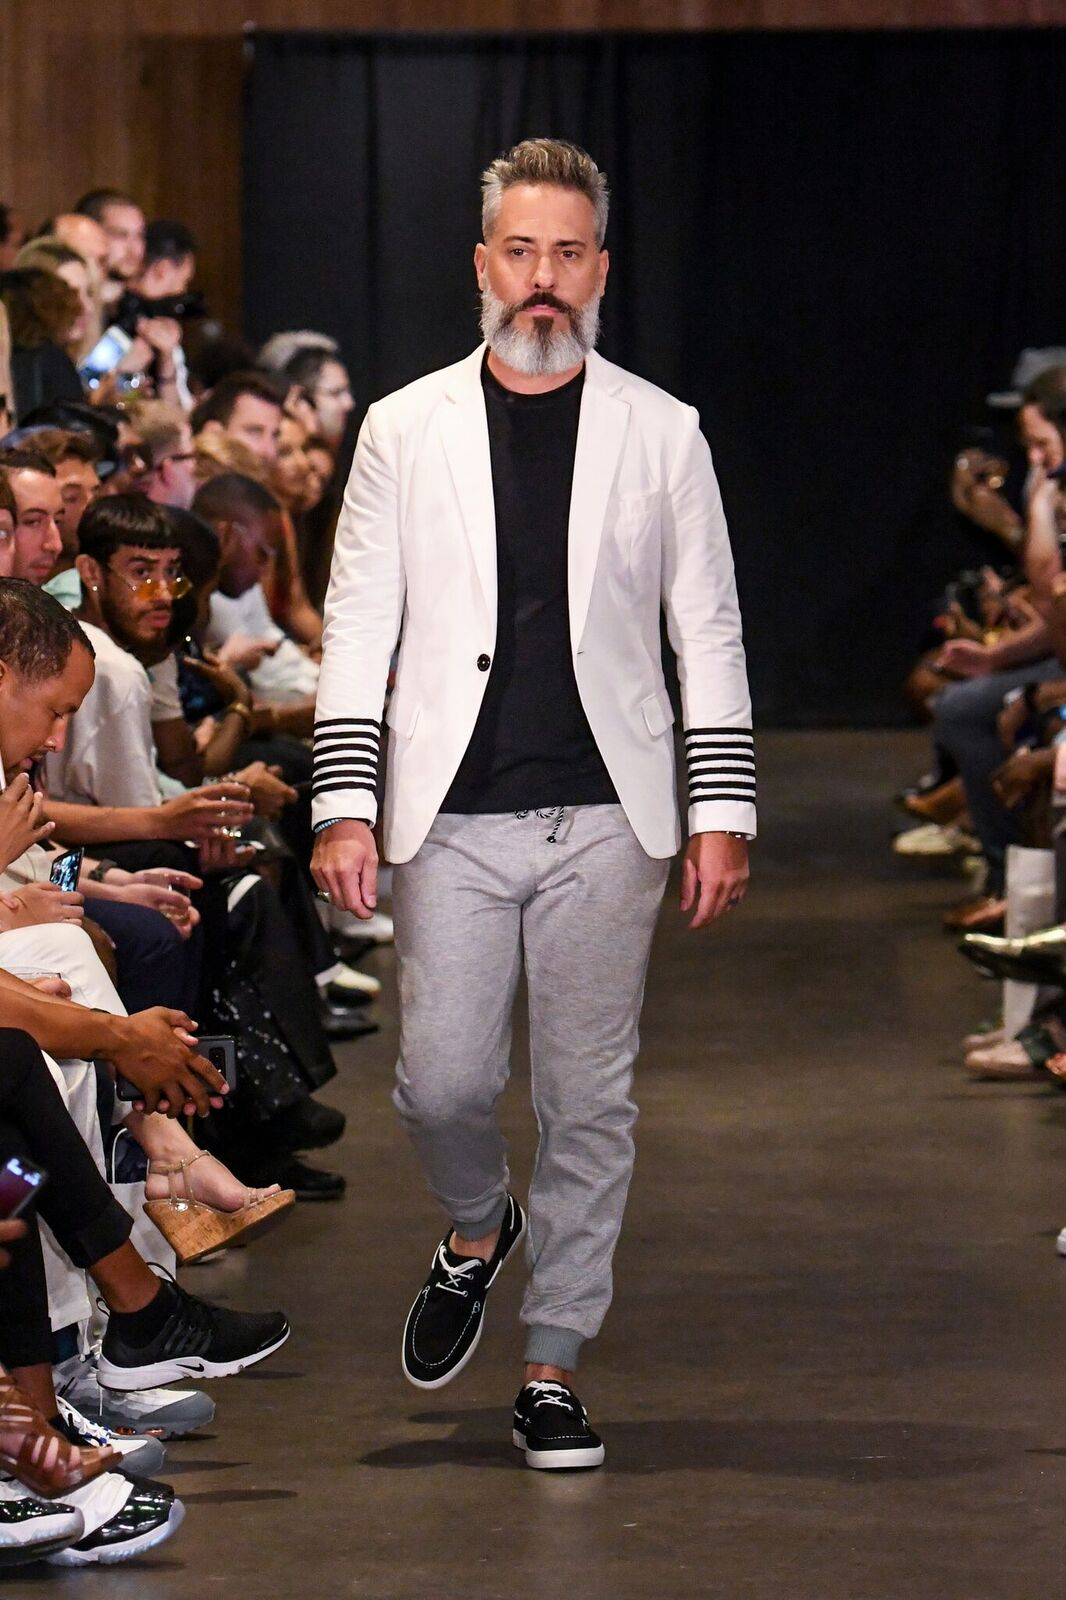 ba4f53cb79fc Grungy Gentleman fused contemporary culture and style for their S S 2019  collection. As Grungy Gentleman always does